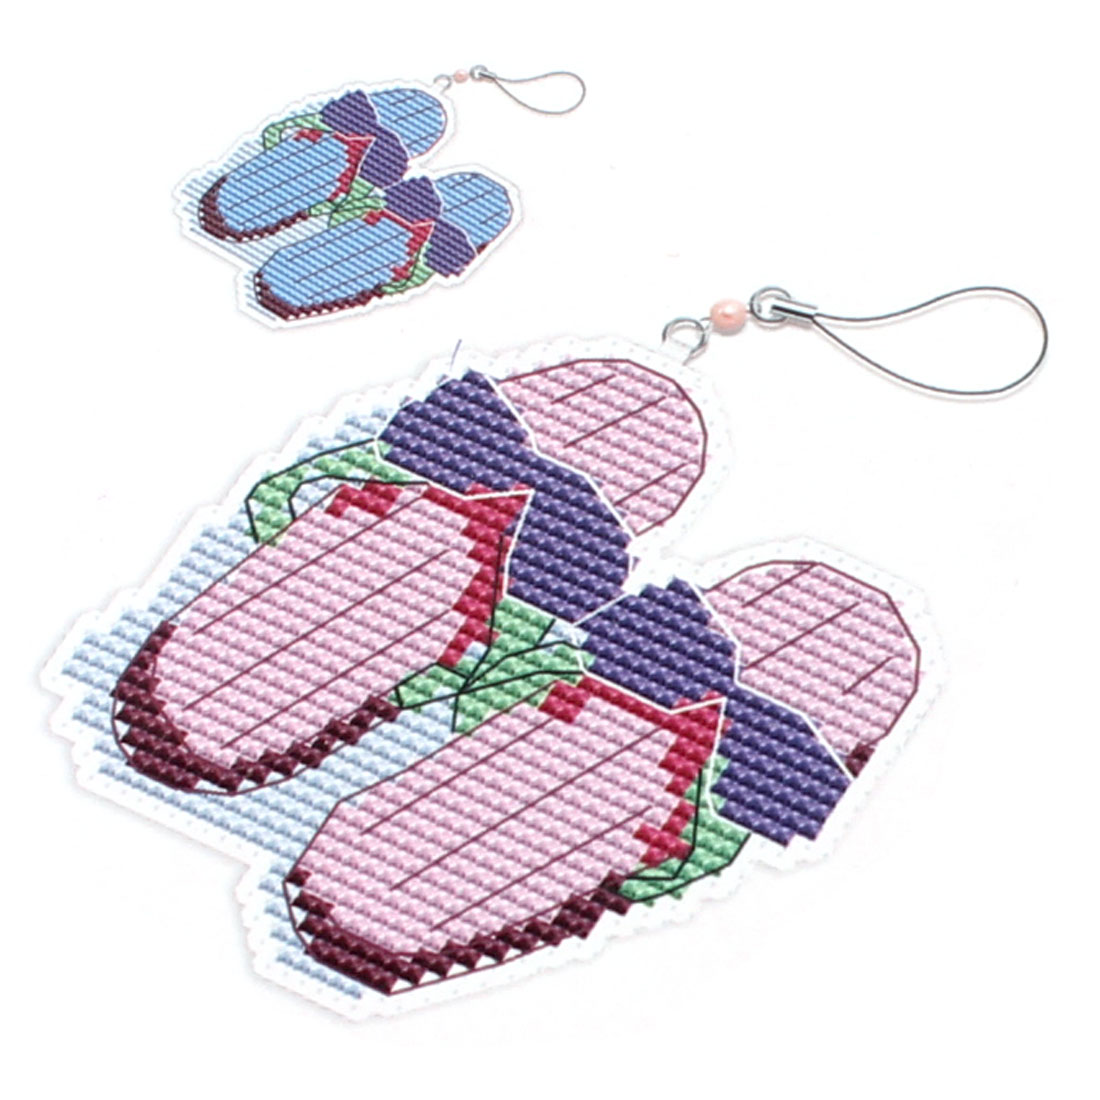 Pair Eyeglasses Slipper Pattern Phone Pendant Cross Stitch Counted Handmade Kit